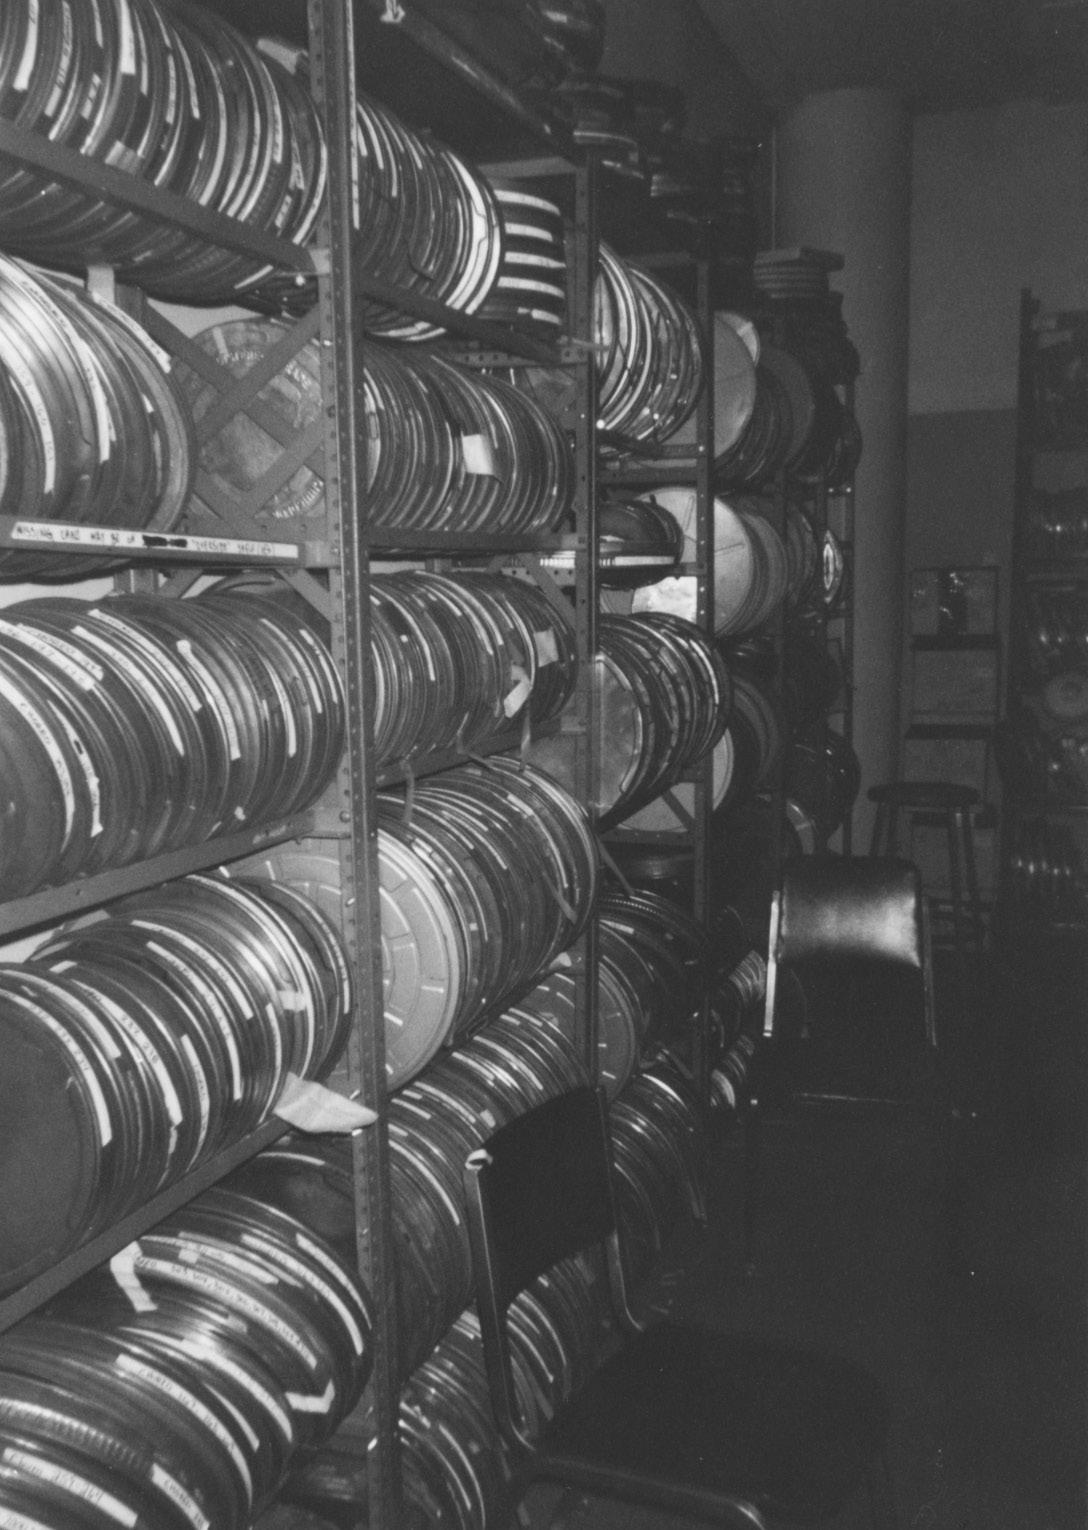 FIGURE 4. The film archive in the original offices of the ACE